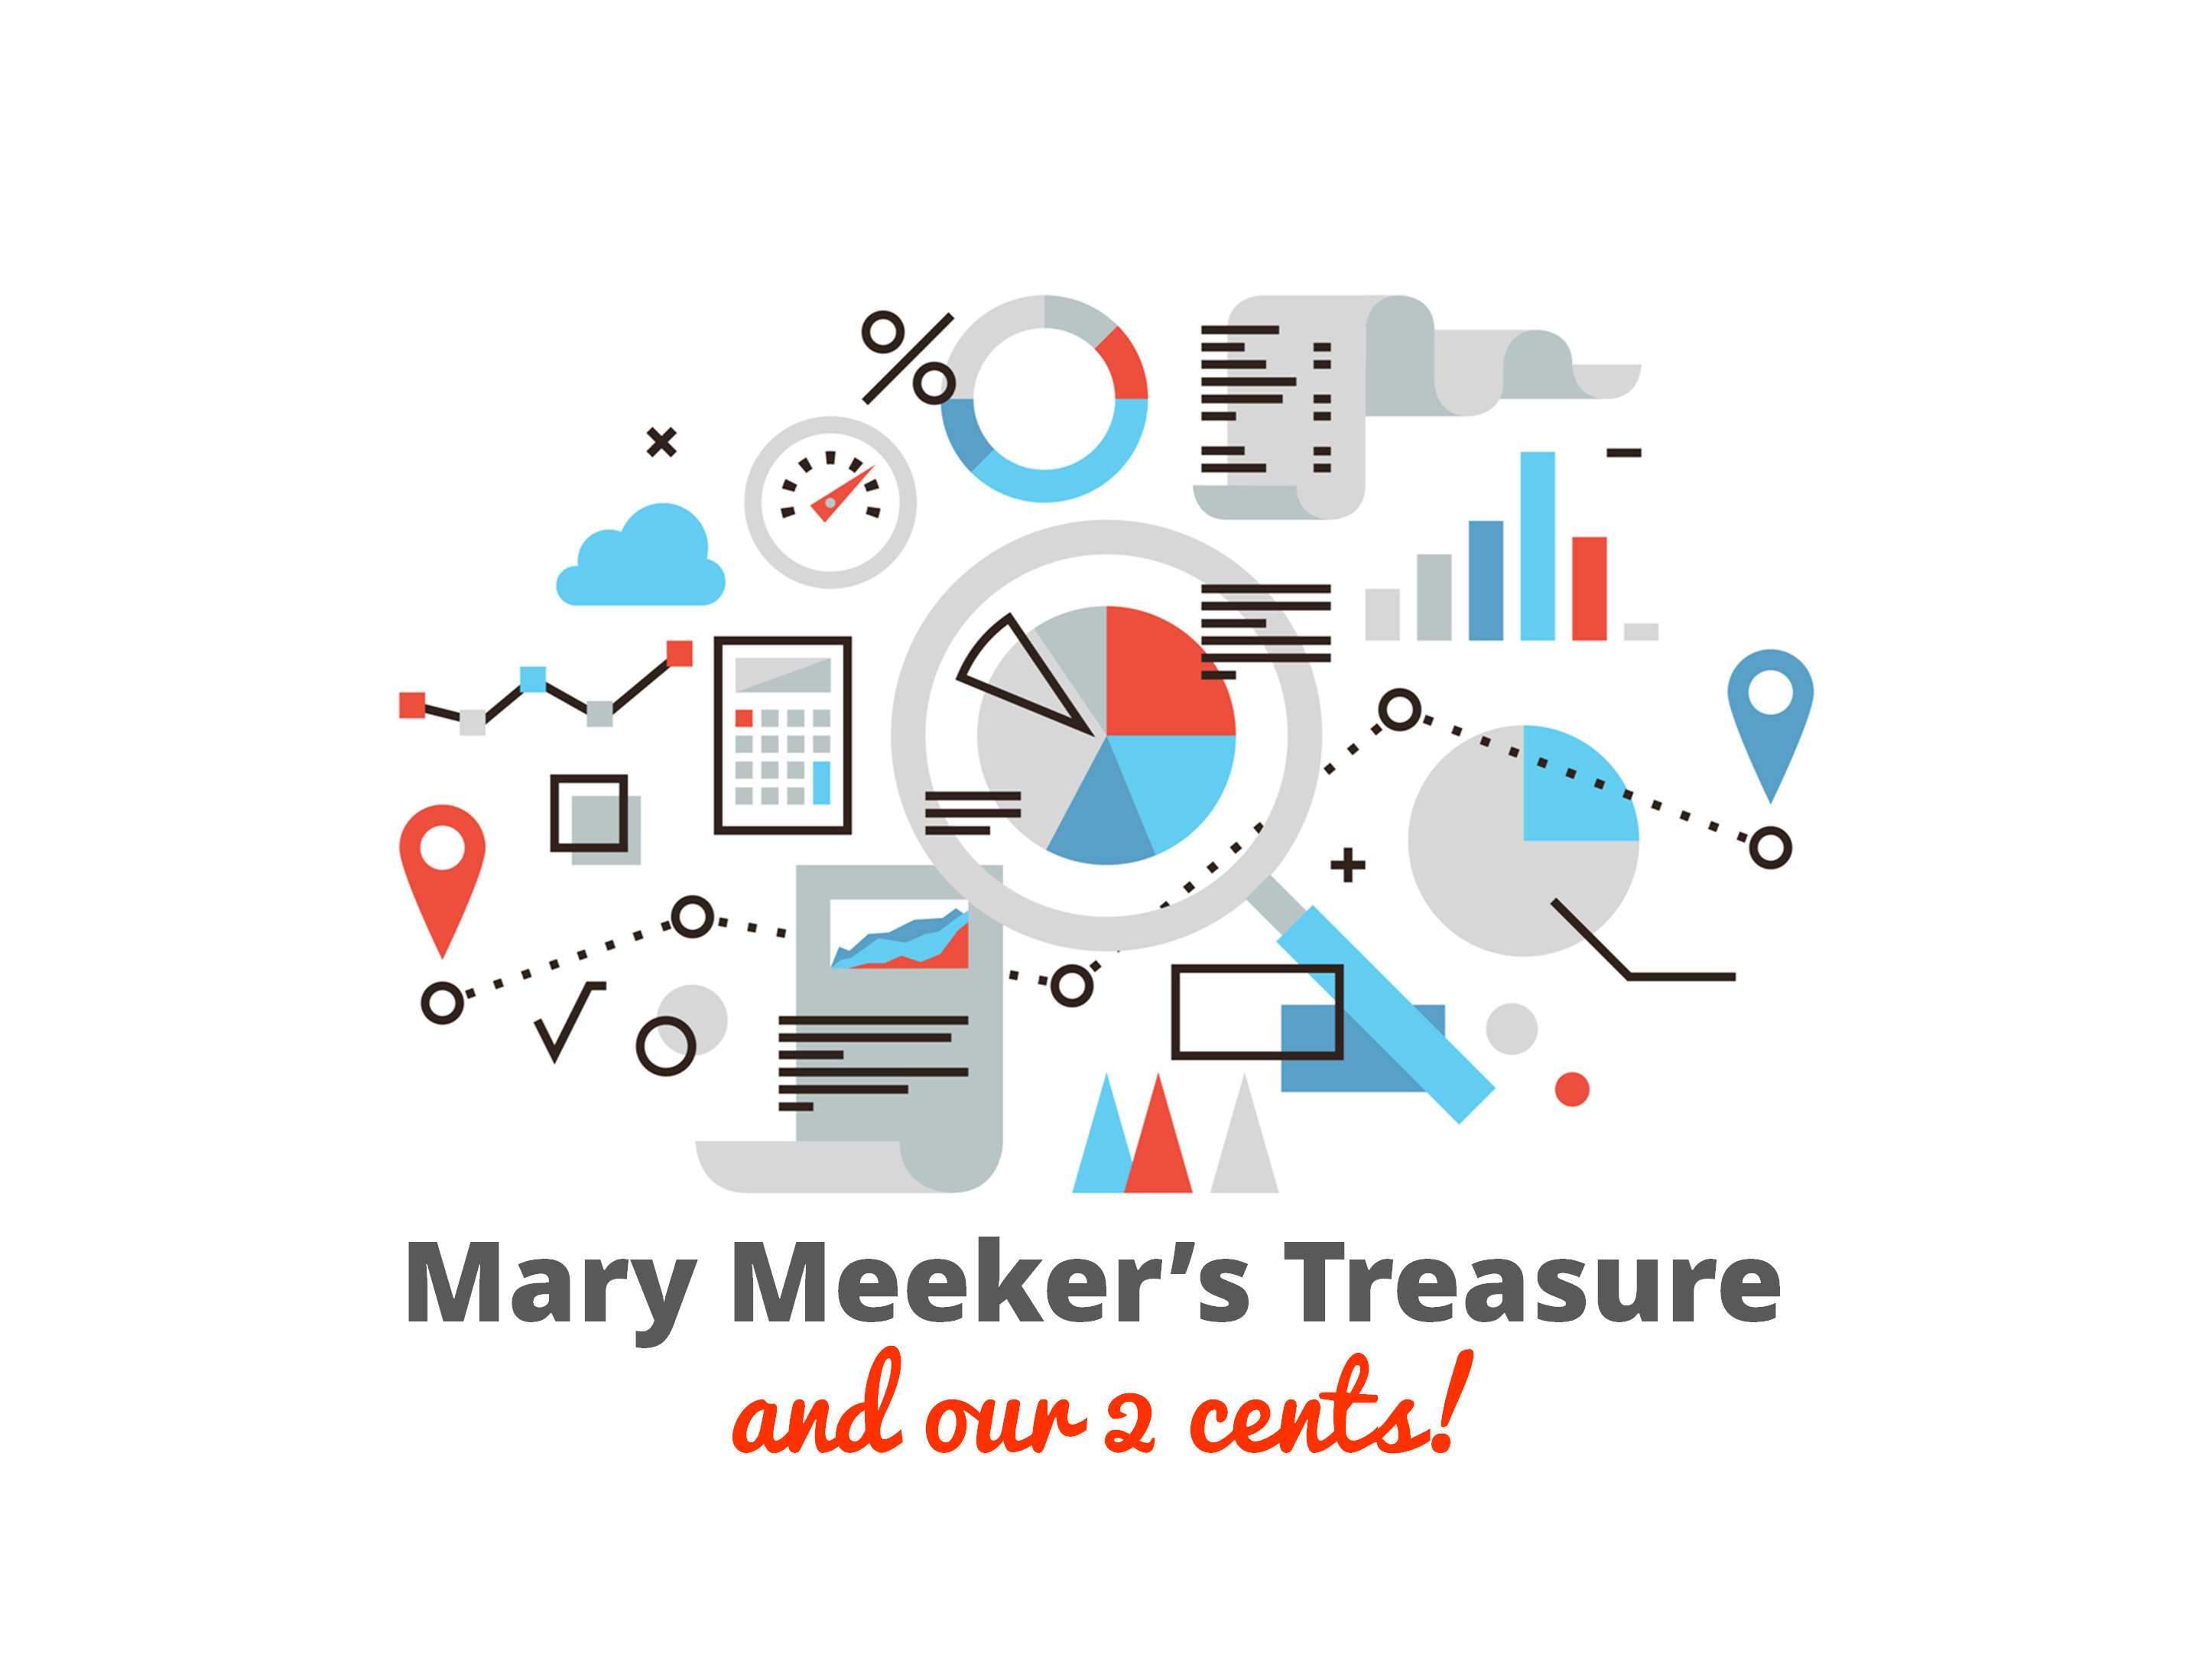 Mary Meeker Internet trends banner